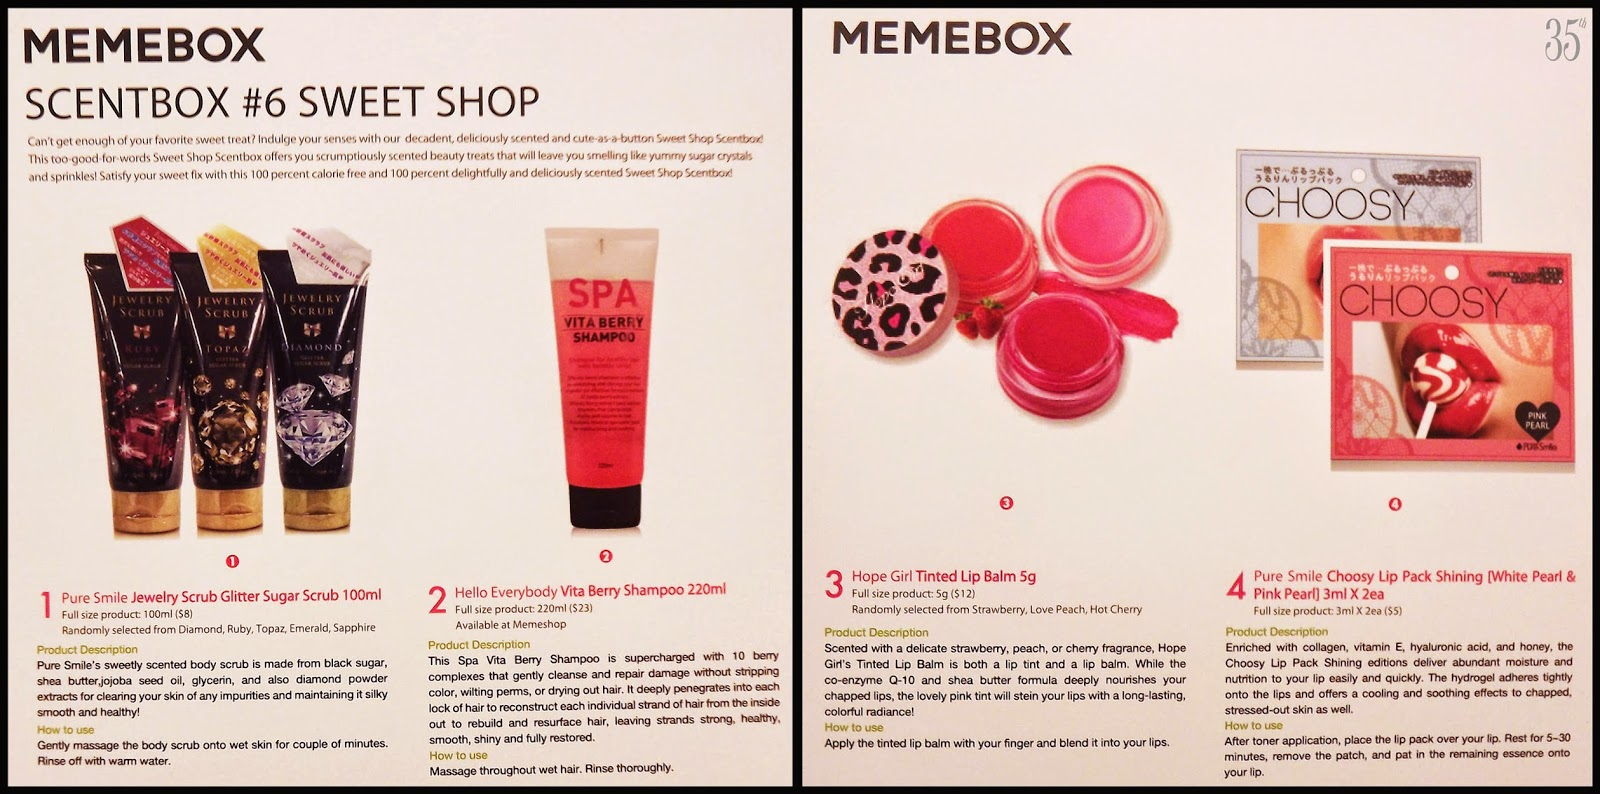 memebox Sweetshop scentbox